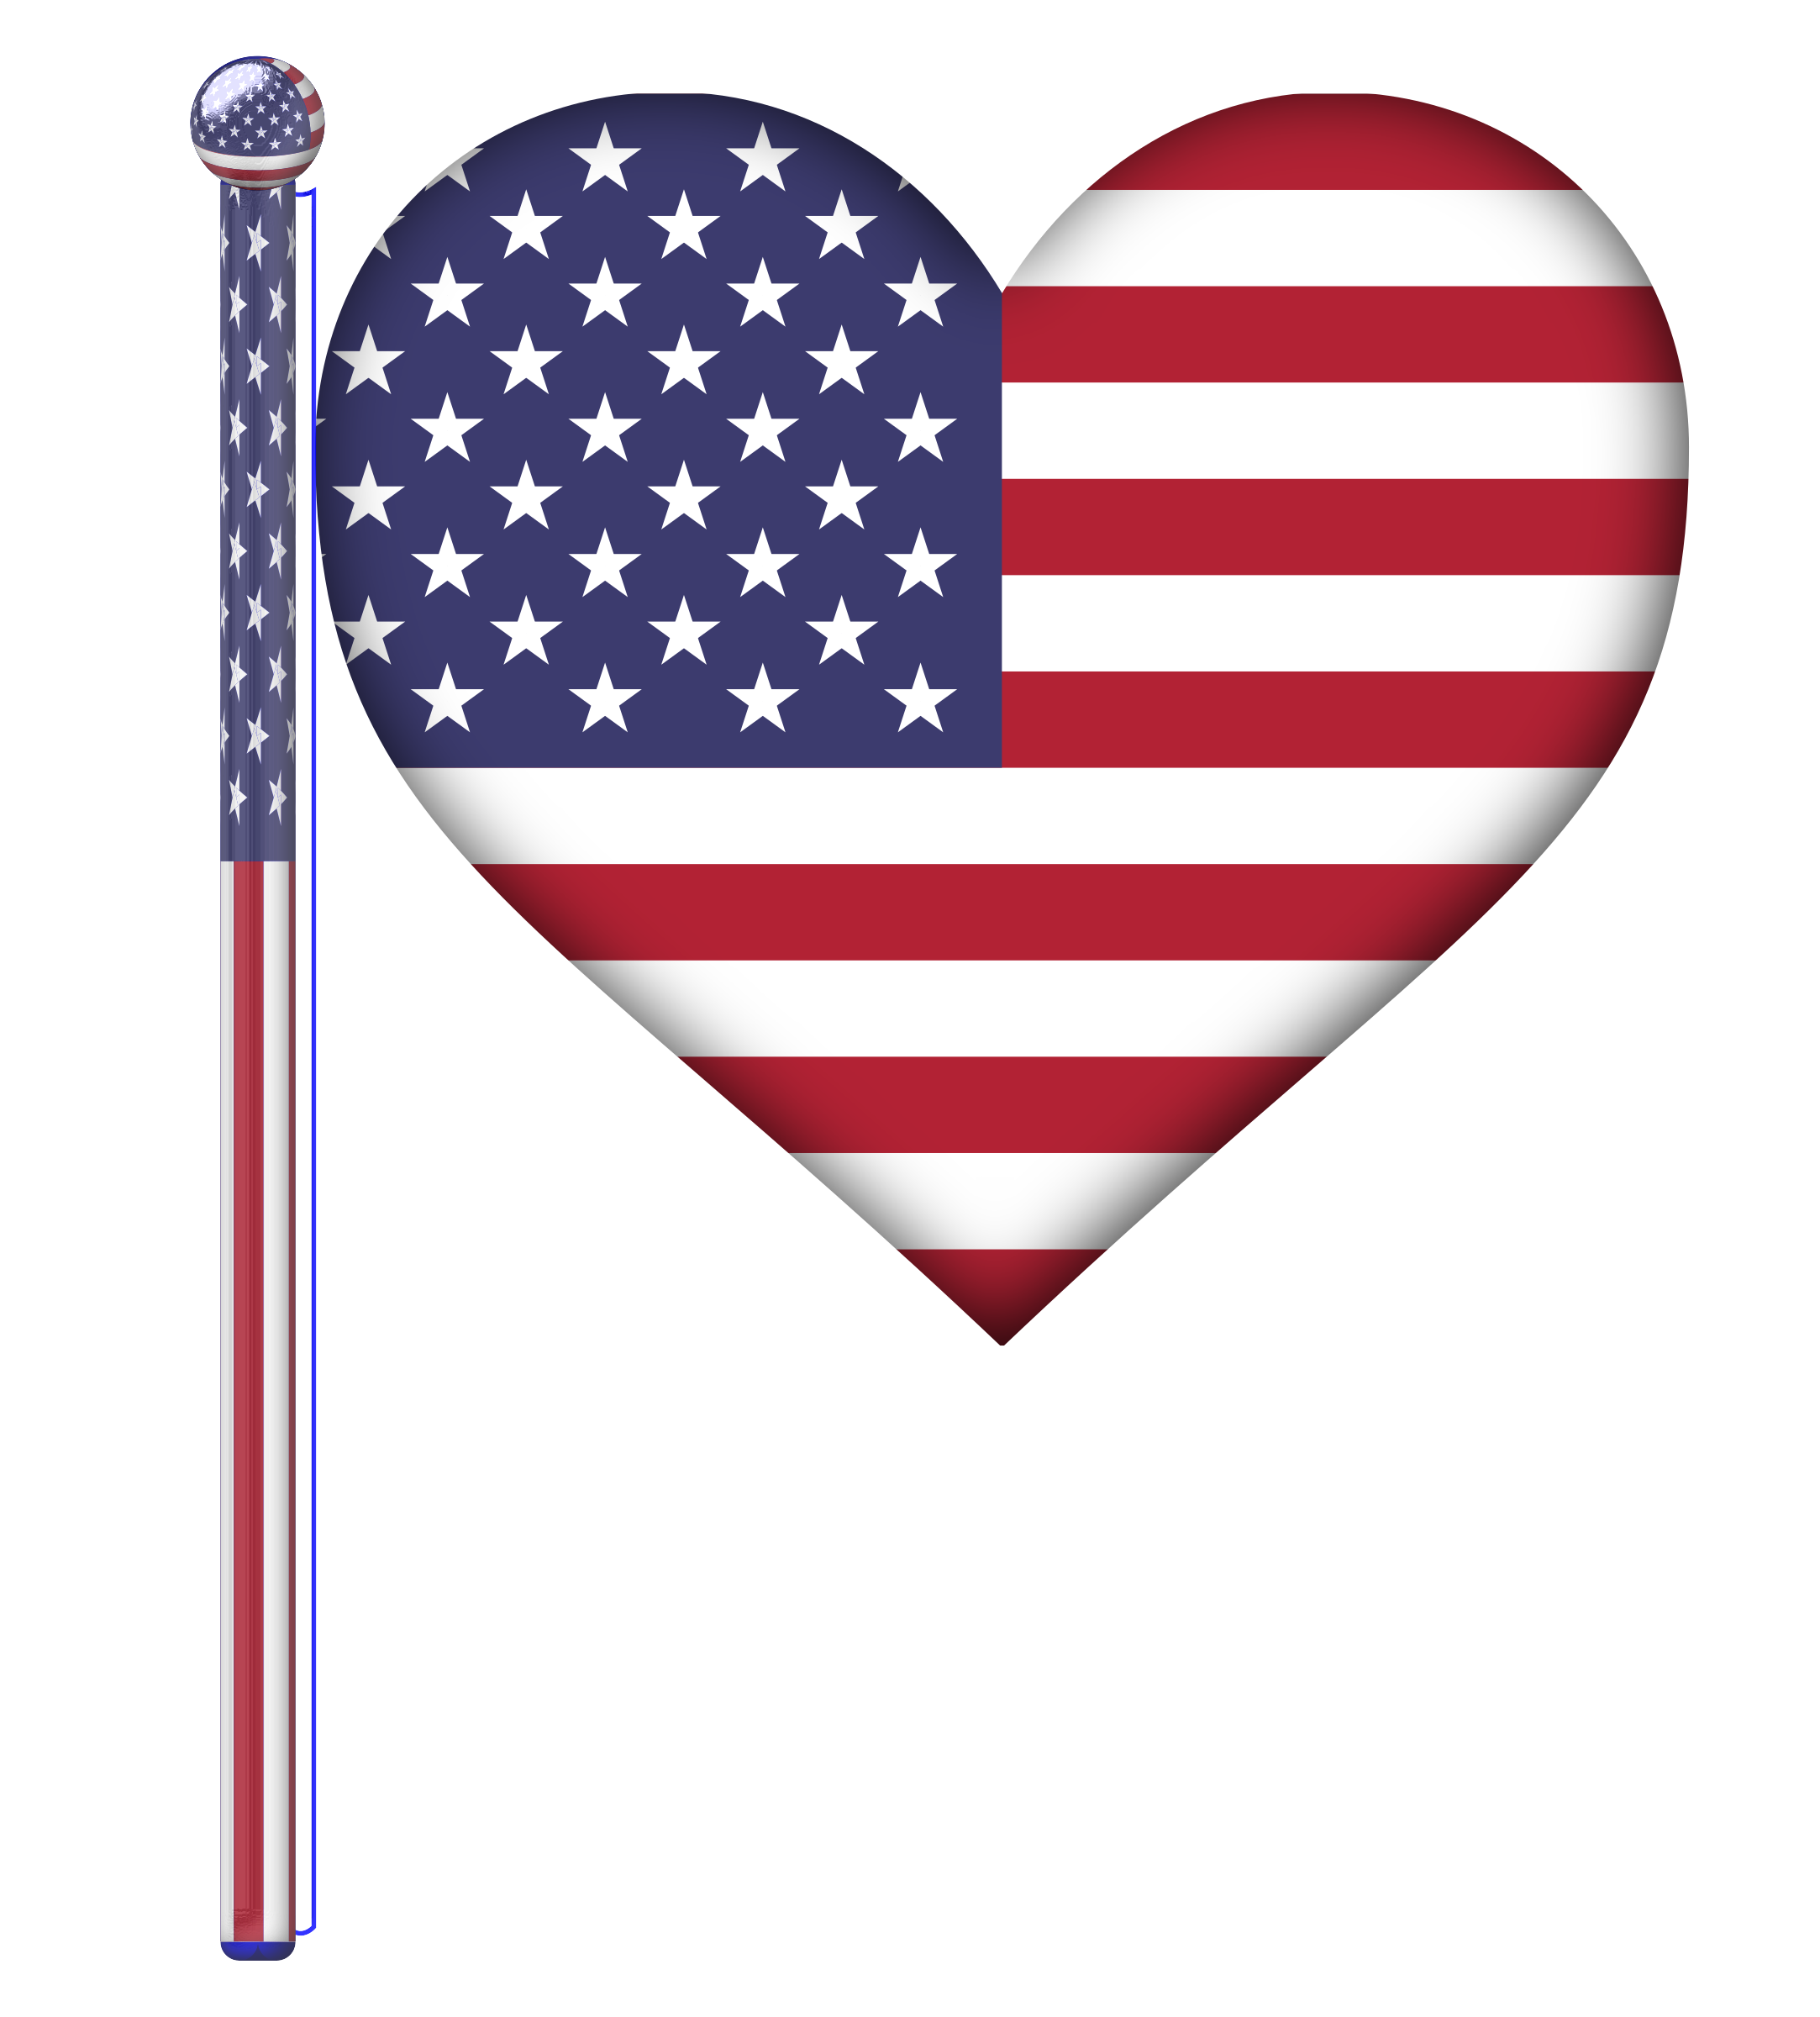 Flag of united states clipart jpg Clipart - USA Heart Flag jpg